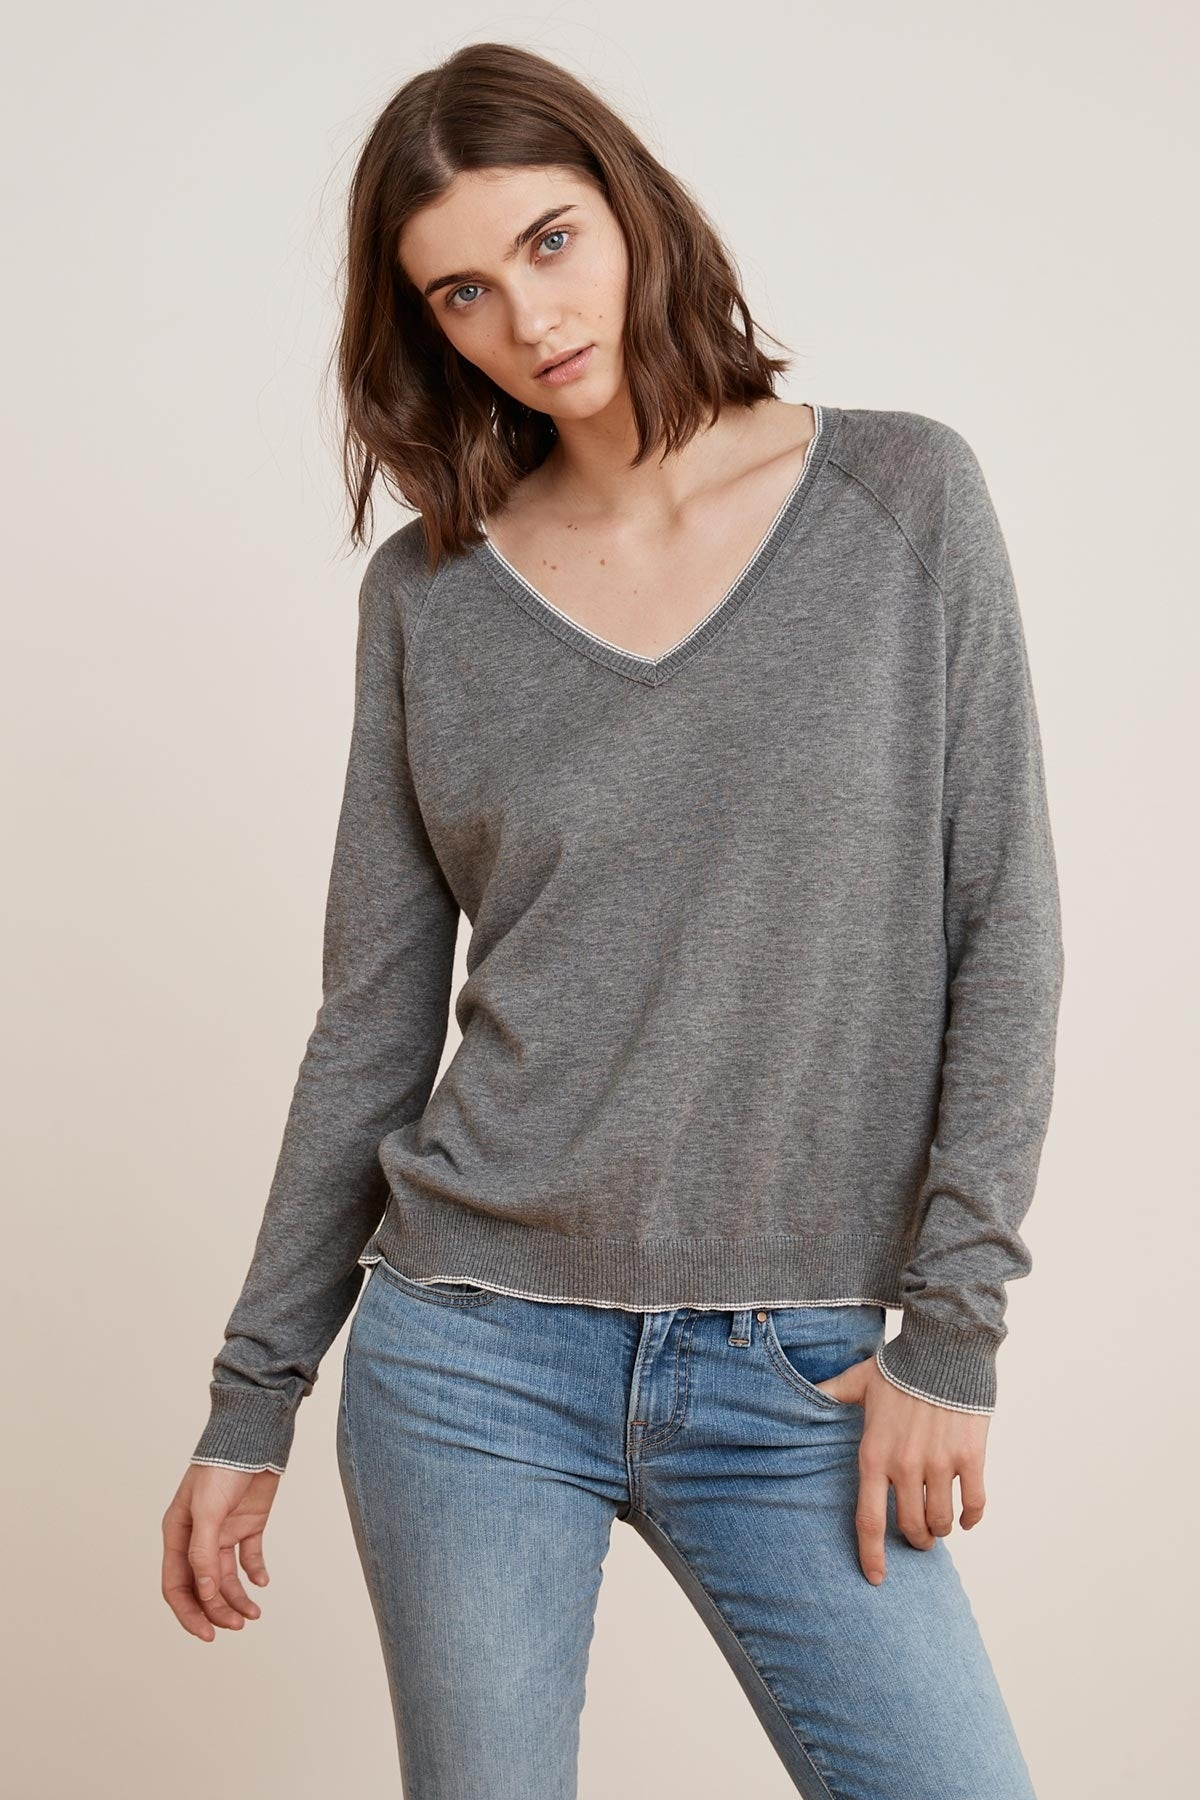 MORIAH LUX COTTON V-NECK SWEATER